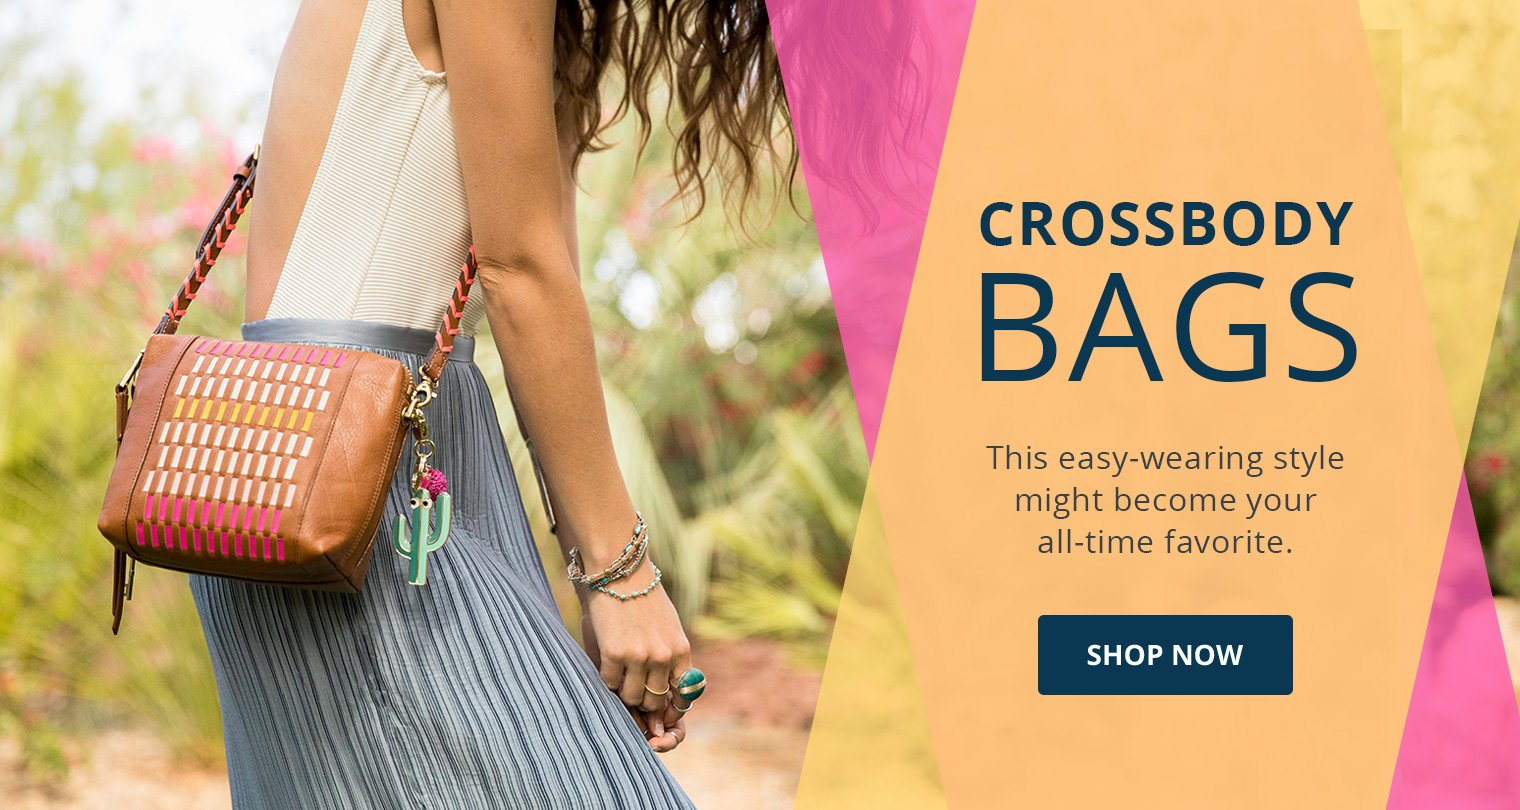 Crossbody bags.This easy-wearing style might become your all-time favorite Shop Now.